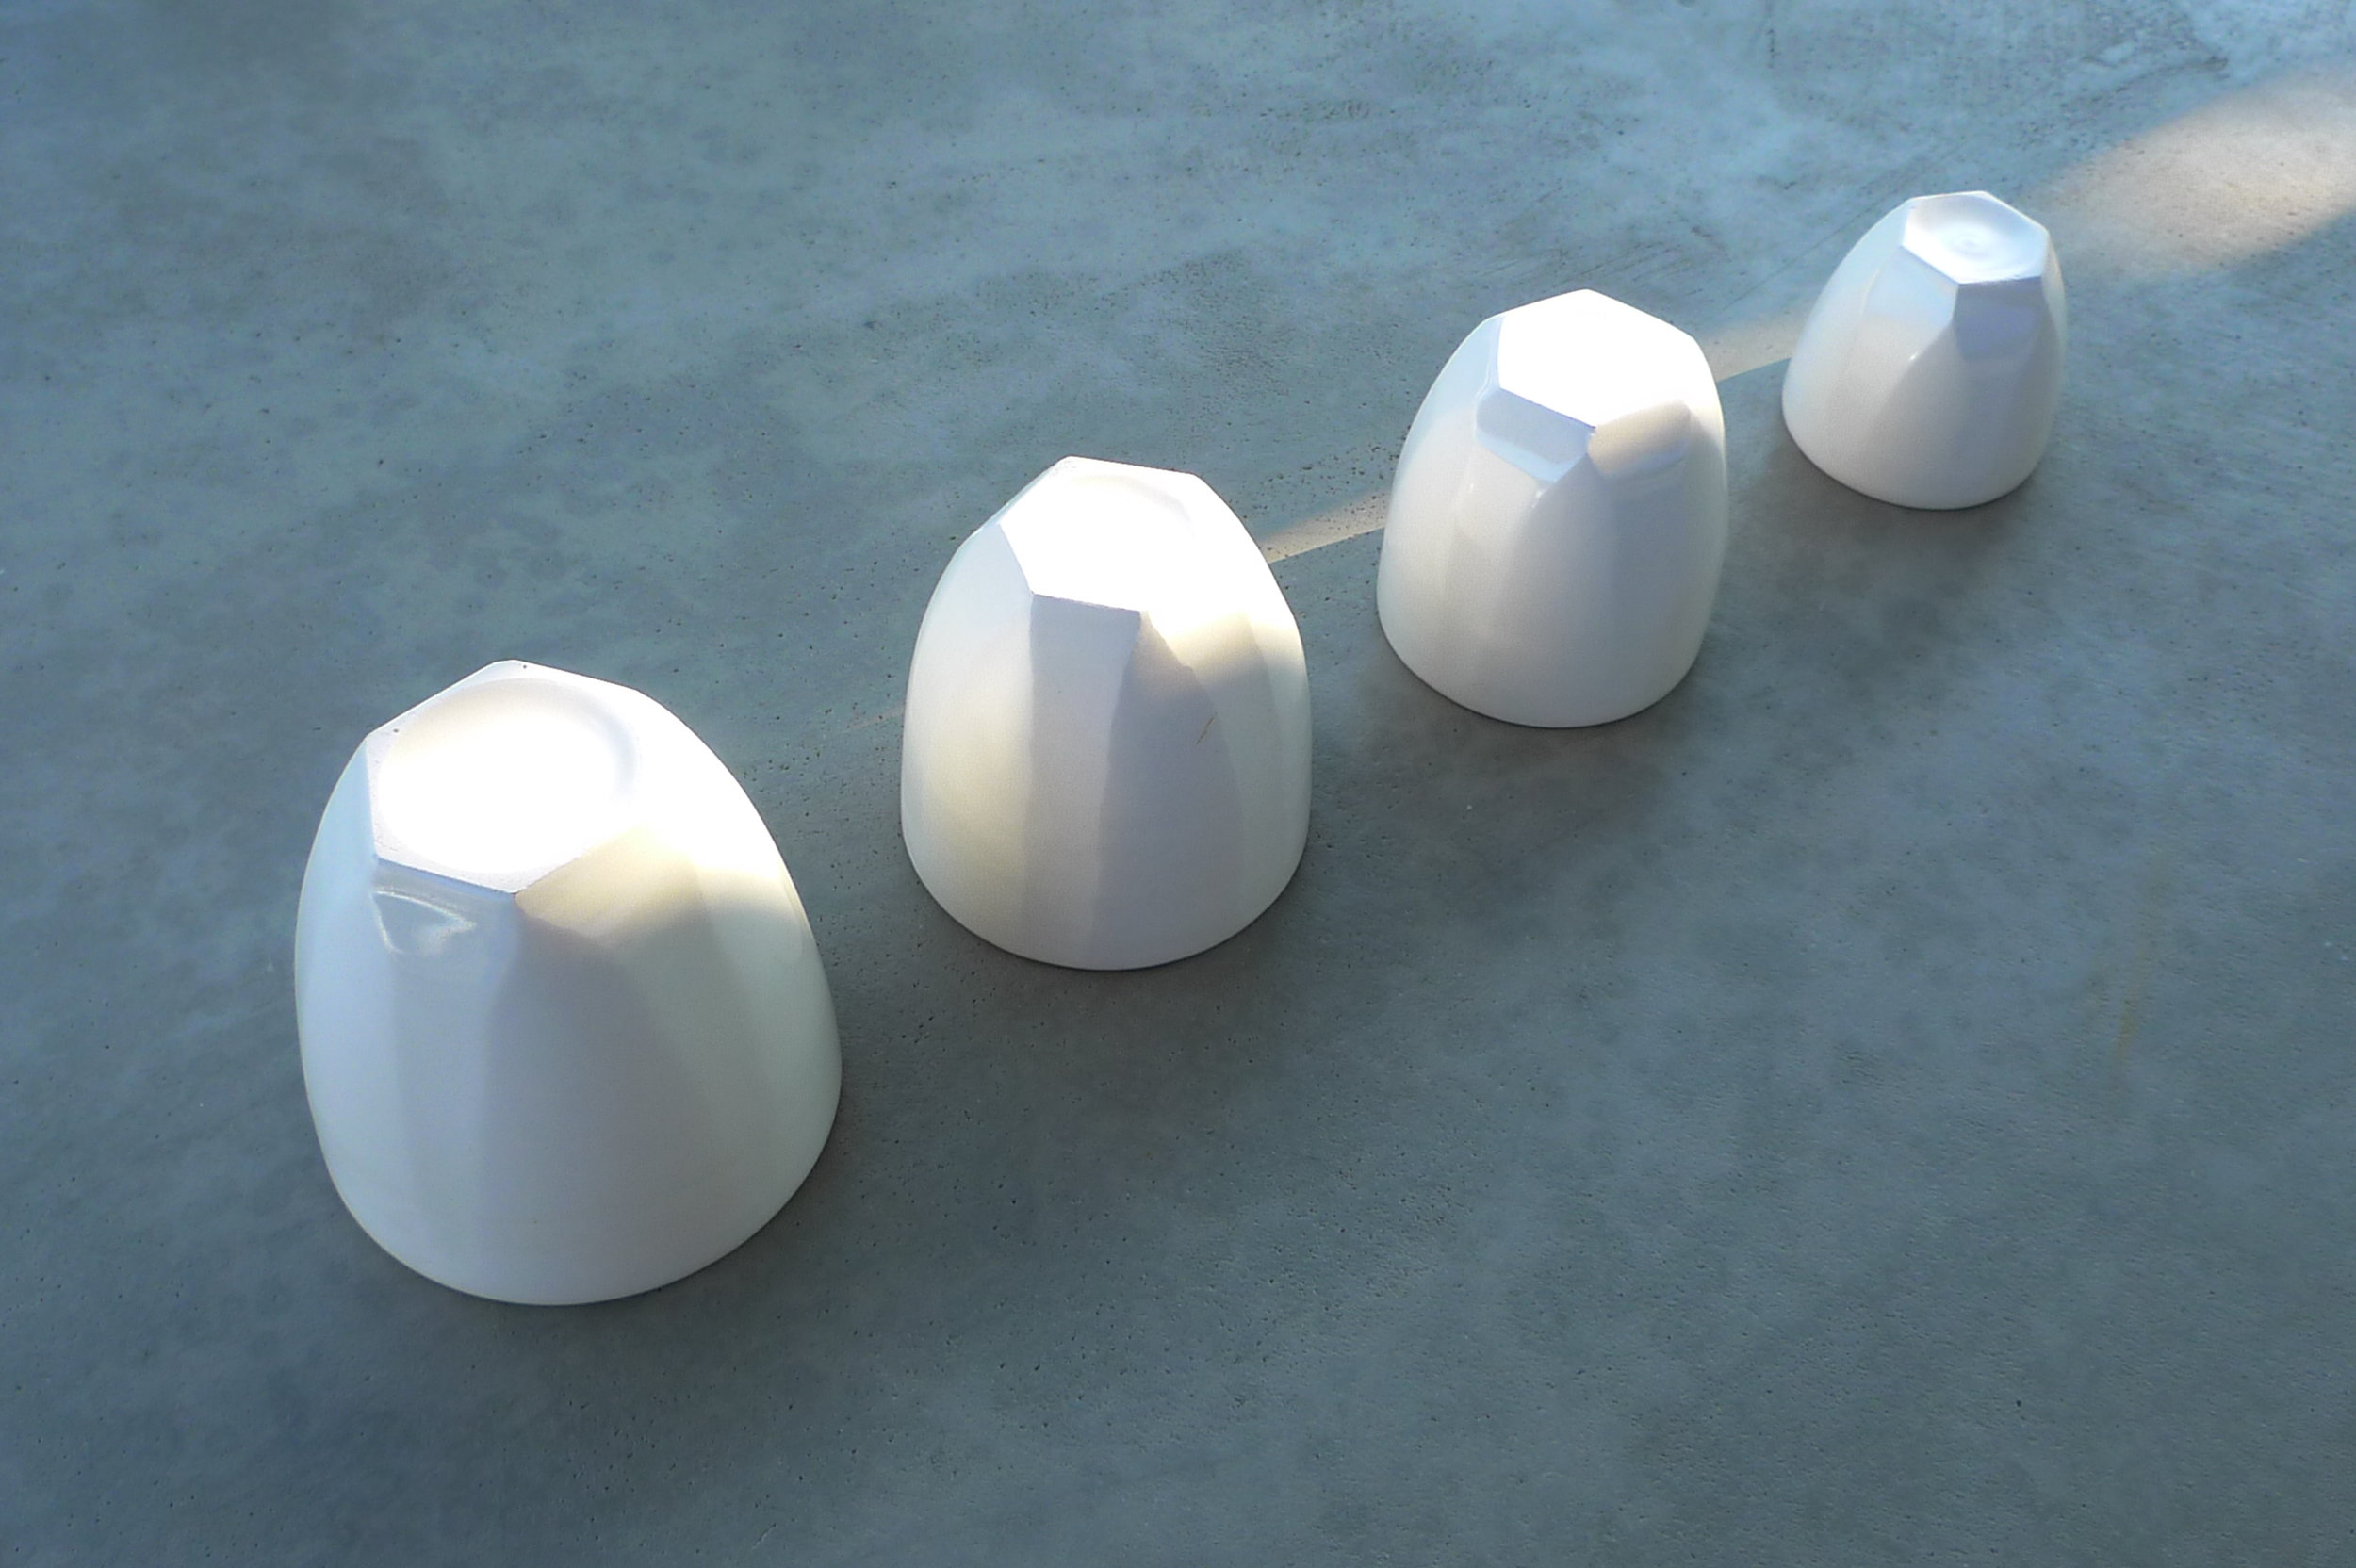 white ceramic body 4 sizes various colours: 9x9cm(22E),8x8cm(20E),7.5x7cm(18E),6x6(15E)